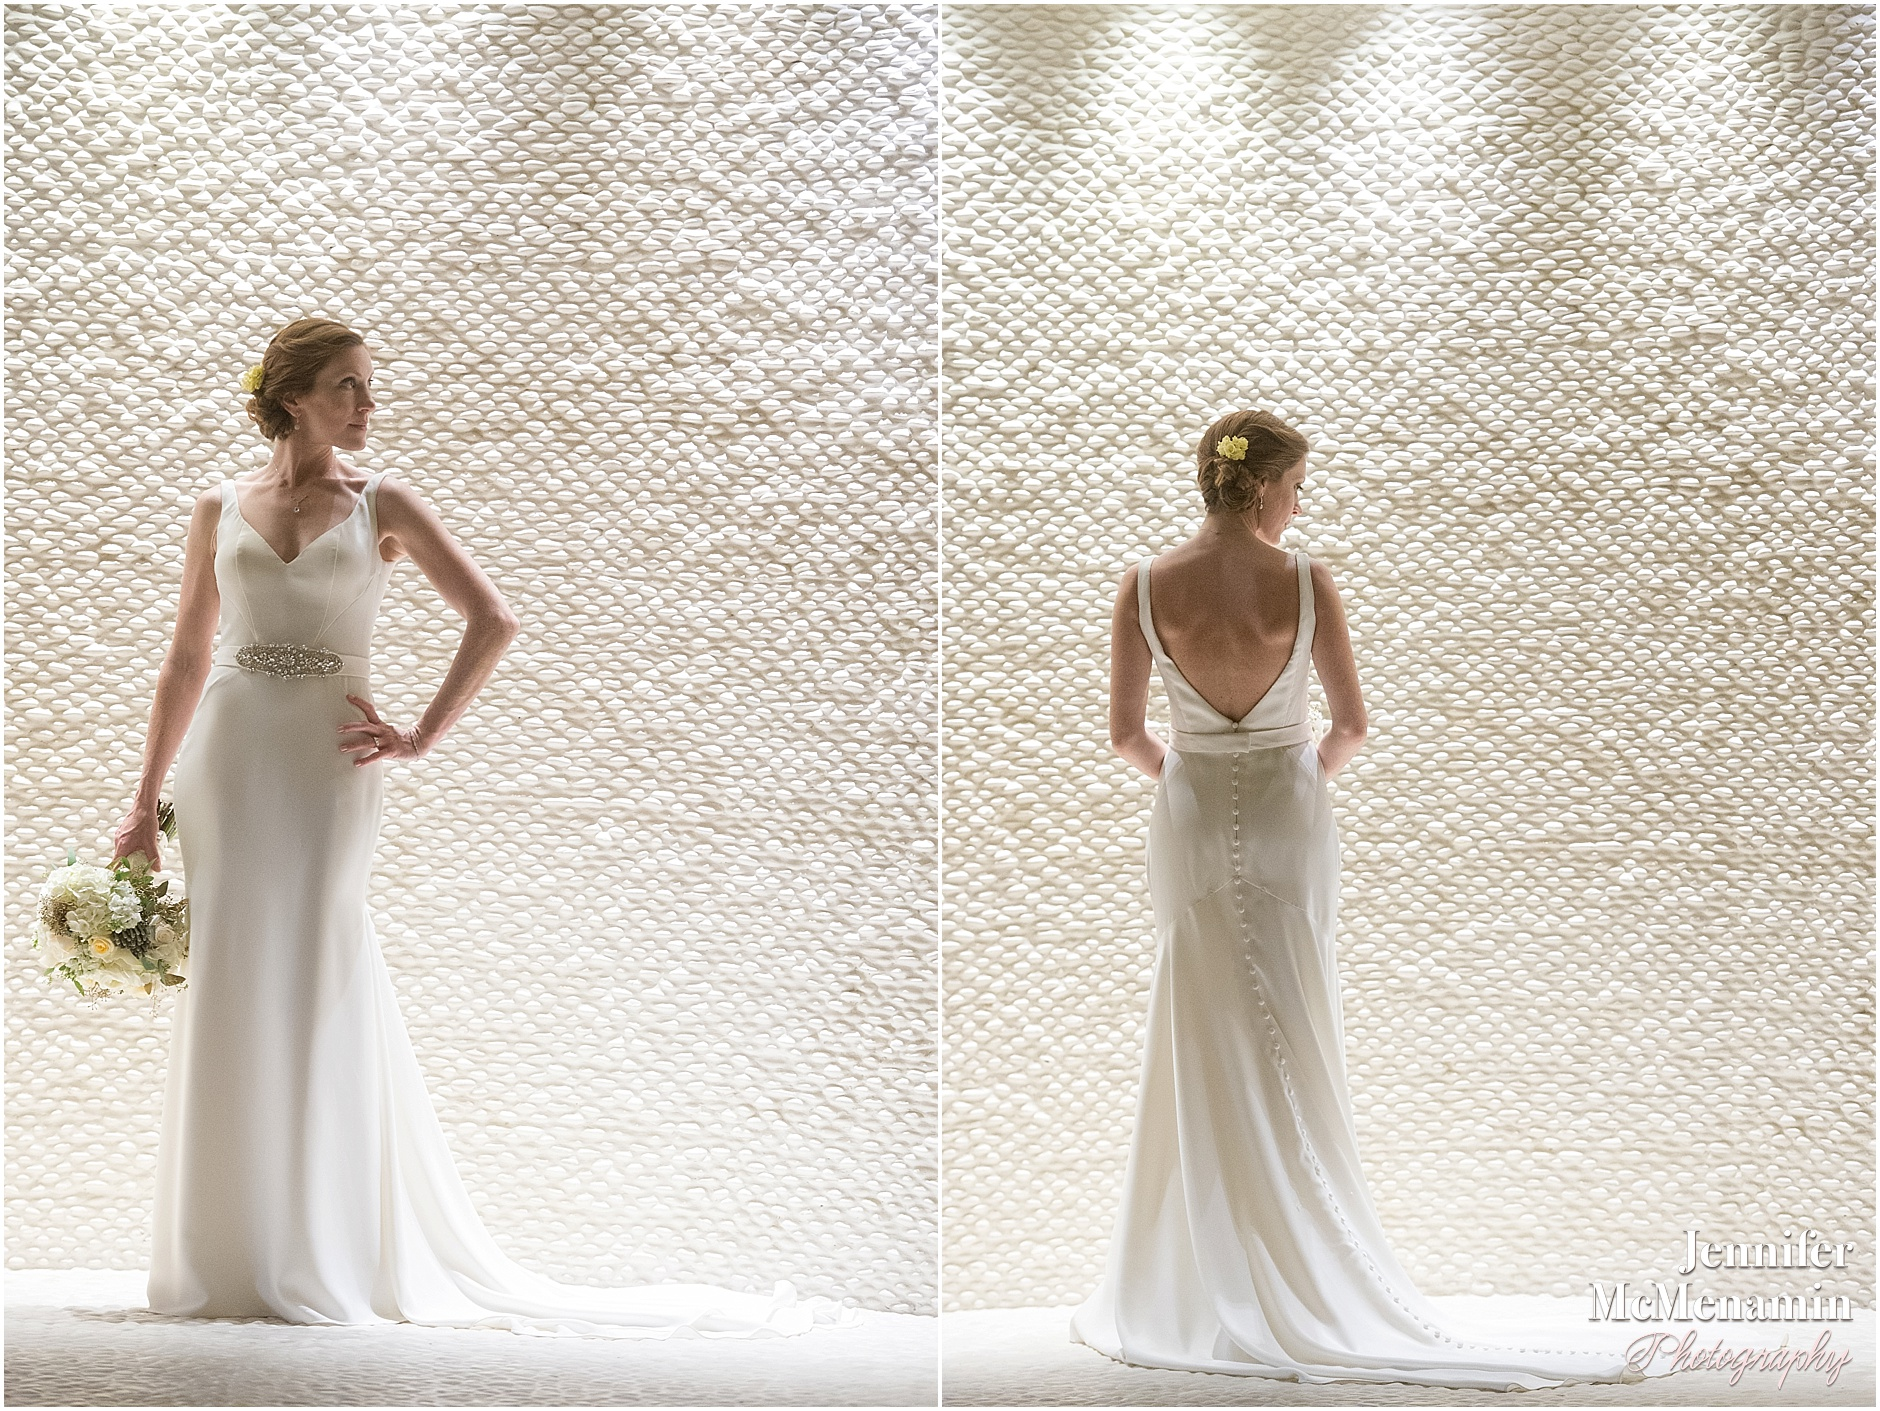 047-Four-Seasons-Baltimore-wedding-Jennifer-McMenamin-Photography